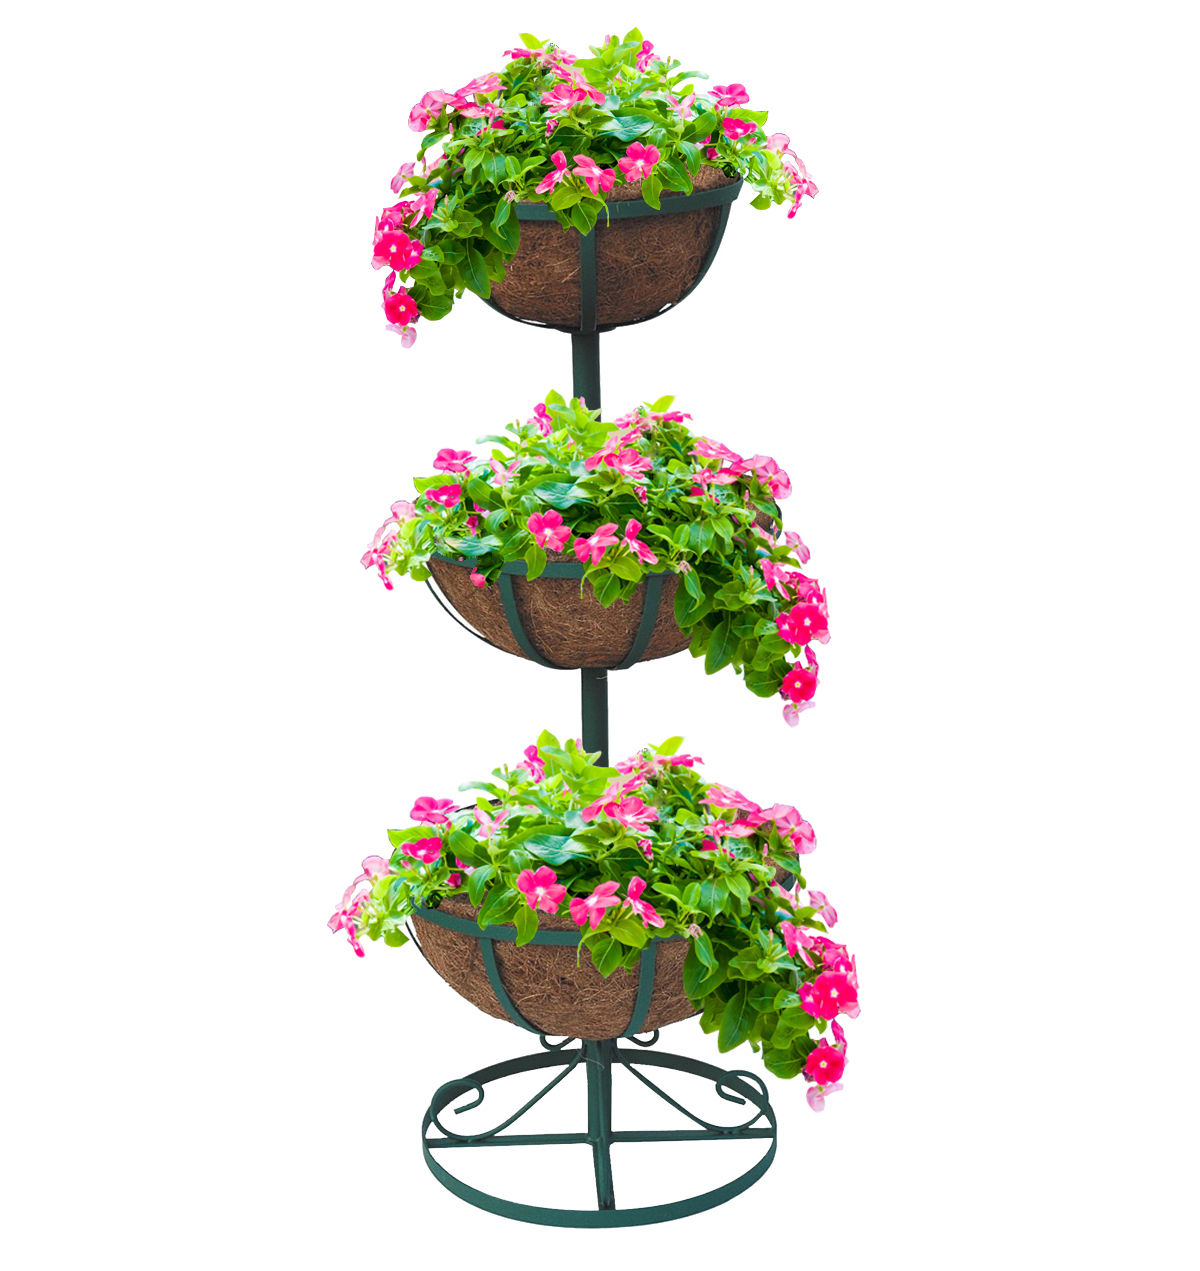 Three Tier Flower Pots 3 Tier Planter Stand With Coco Liners Garden Flower